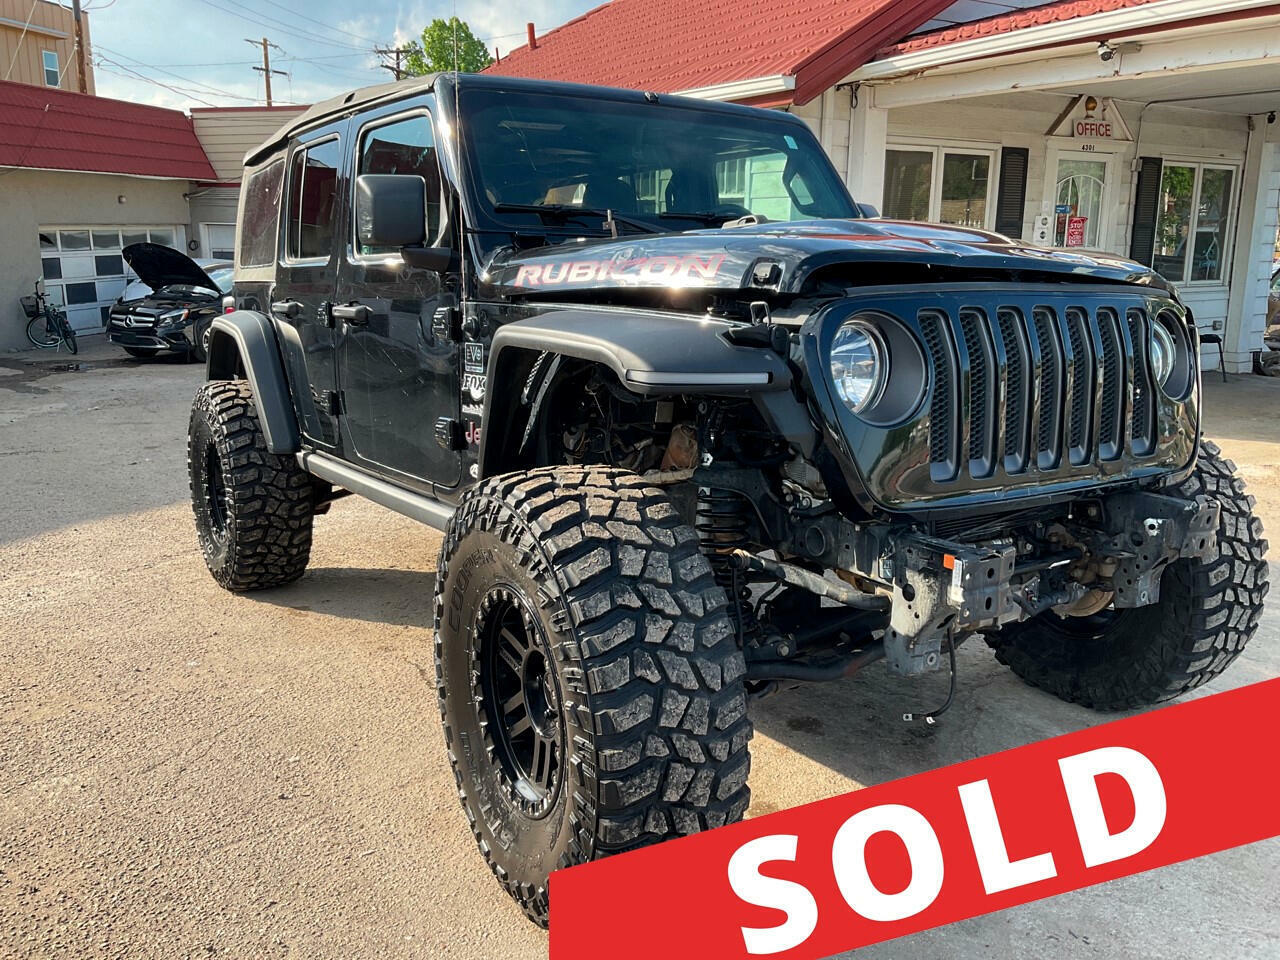 2018 Jeep Wrangler Unlimited, Black with 40835 Miles available now!